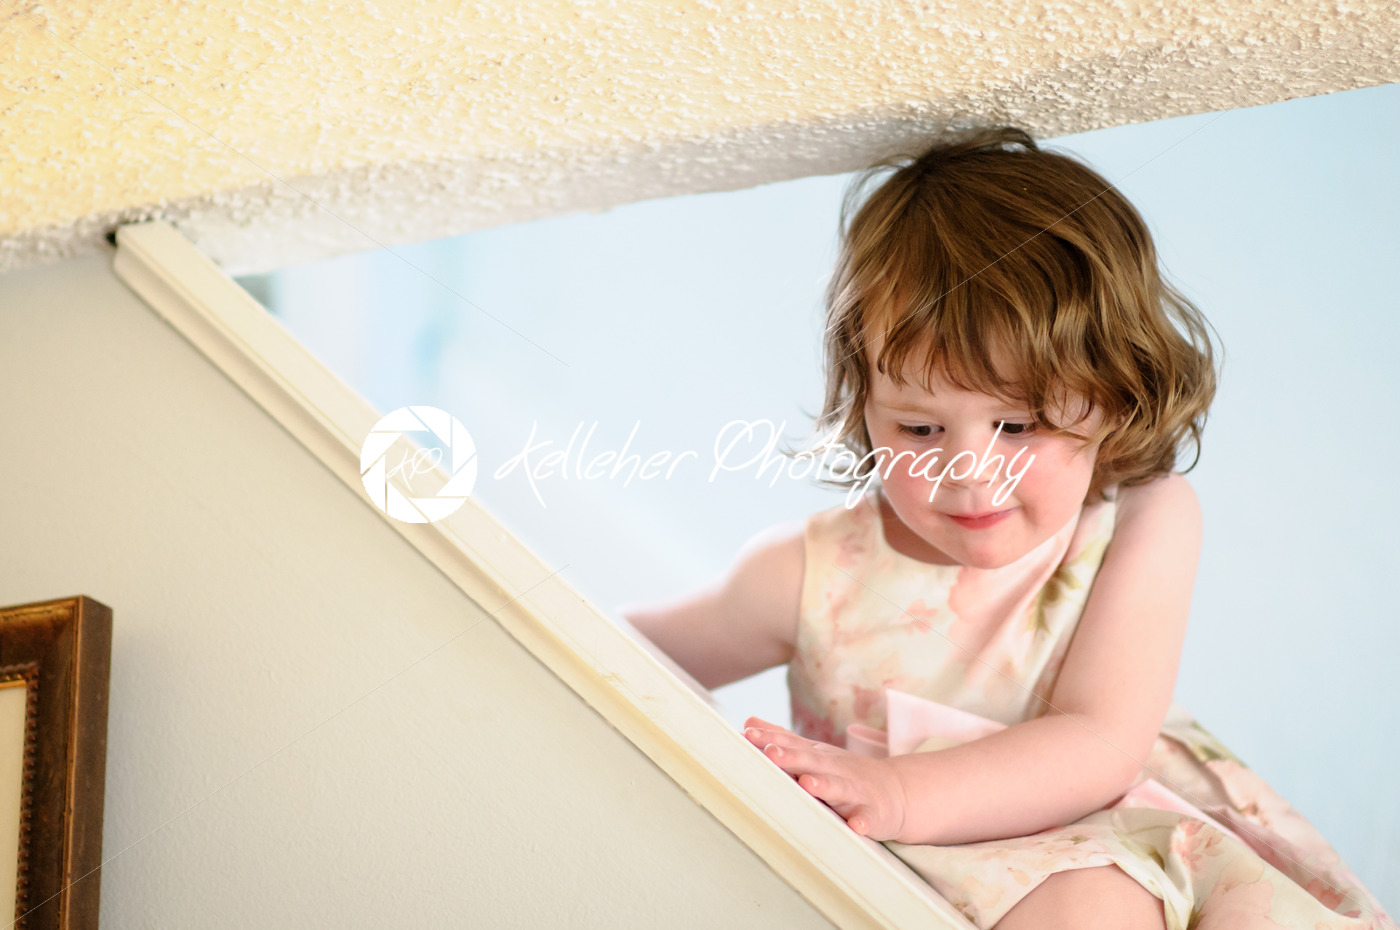 Portrait of a cute little girl inside on stairs - Kelleher Photography Store